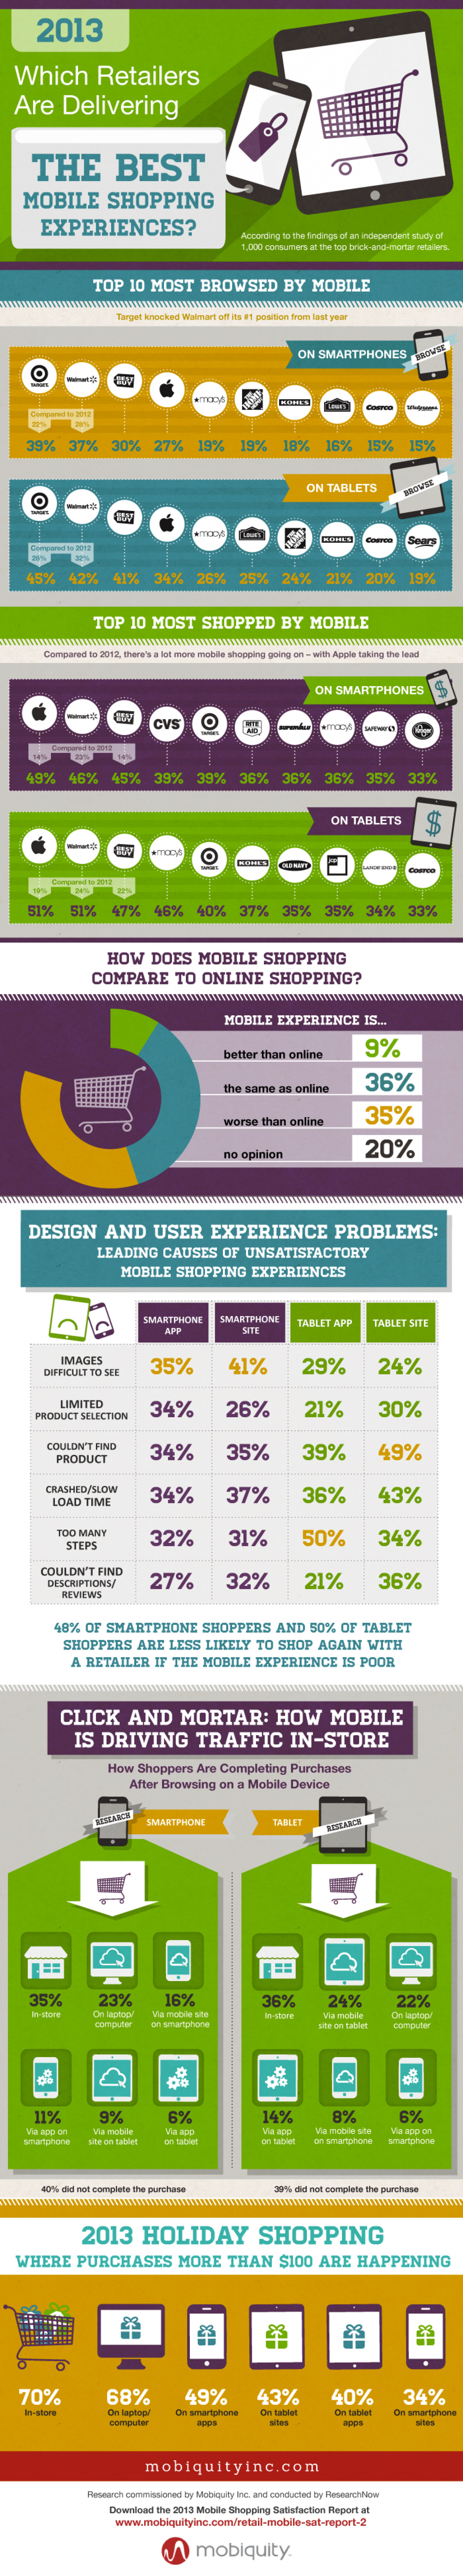 Which Retailers are Delivering the Best Mobile Shopping Experiences? Infographic